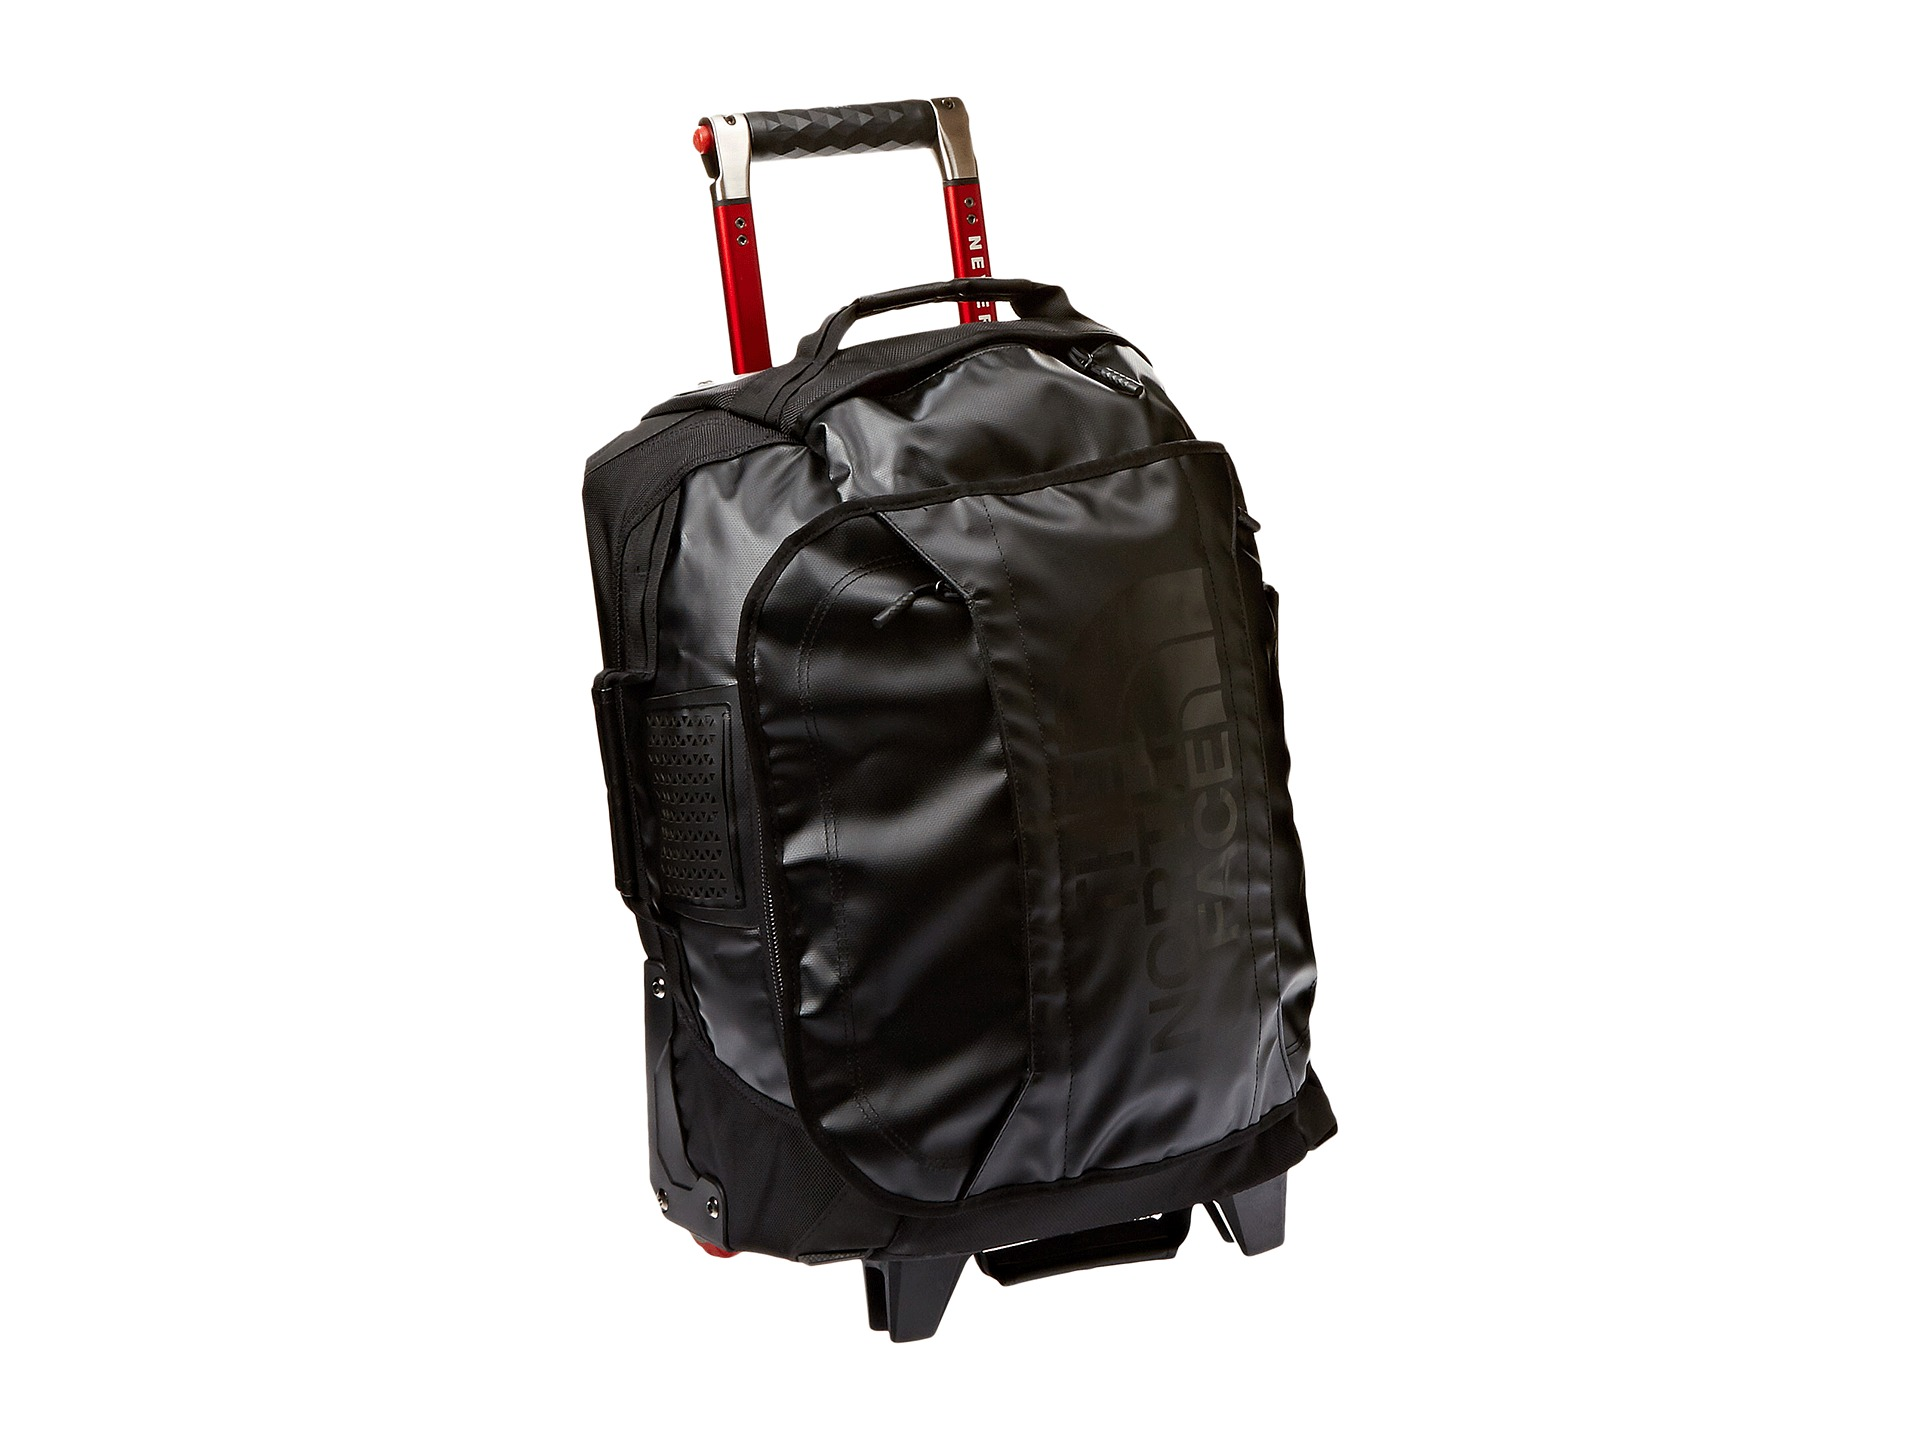 north face hand luggage bag